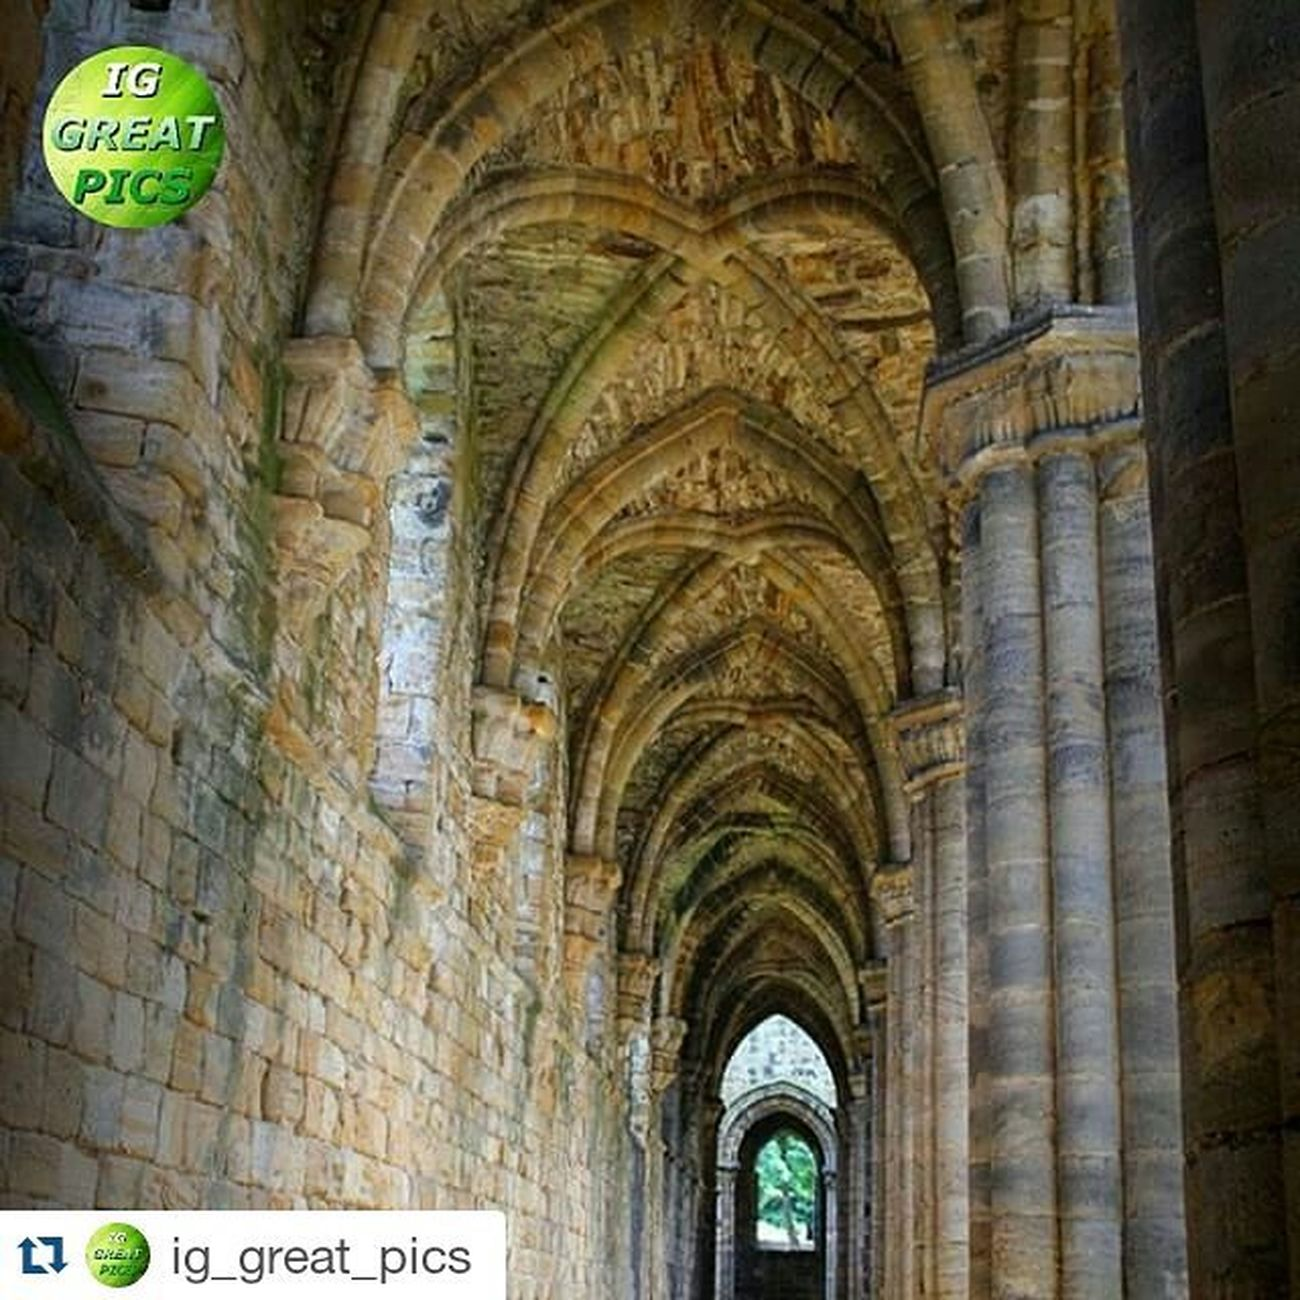 "Thankyou so much for the feature i really appreciate it, its always an honour to have my photos presented on you're page 😊👍Repost @ig_great_pics ・・・ July 12, 2015 • 💥ⓟⓡⓞⓤⓓⓛⓨ ⓟⓡⓔⓢⓔⓝⓣⓢ💥 ================================= FEATURED: Architectures PLACE: Kirkstall Abbey. Leeds. West Yorkshire - UK PHOTO BY:  @unitedk_photos  Congratulations !! 🌟👏🌟 Thanks for sharing with us this great pic!! Please IG friends show your support by visiting their wonderful gallery !! 👍 ================================= 📌 No matter the quantity but the quality of our followers 📌 ➡ Follow @ig_great_pics®  Tag your photos with Ig_great_pics ⛔ Photos must be your own ⛔ ================================= 📝 ""Photography is a tool for dealing with things that everybody knows, but nobody pays attention to"" (Emmet Gowing) ================================= Ig_great_pics® Abbey Architecture Perspective Archs Kirkstall Unitedkinhdom Corridors  Gp_unitedk_photos Beautiful Architectureoftheday Ig_great_pics_architecture =================================  PLEASE !! Don't follow to unfollow  ================================== • • 👇"